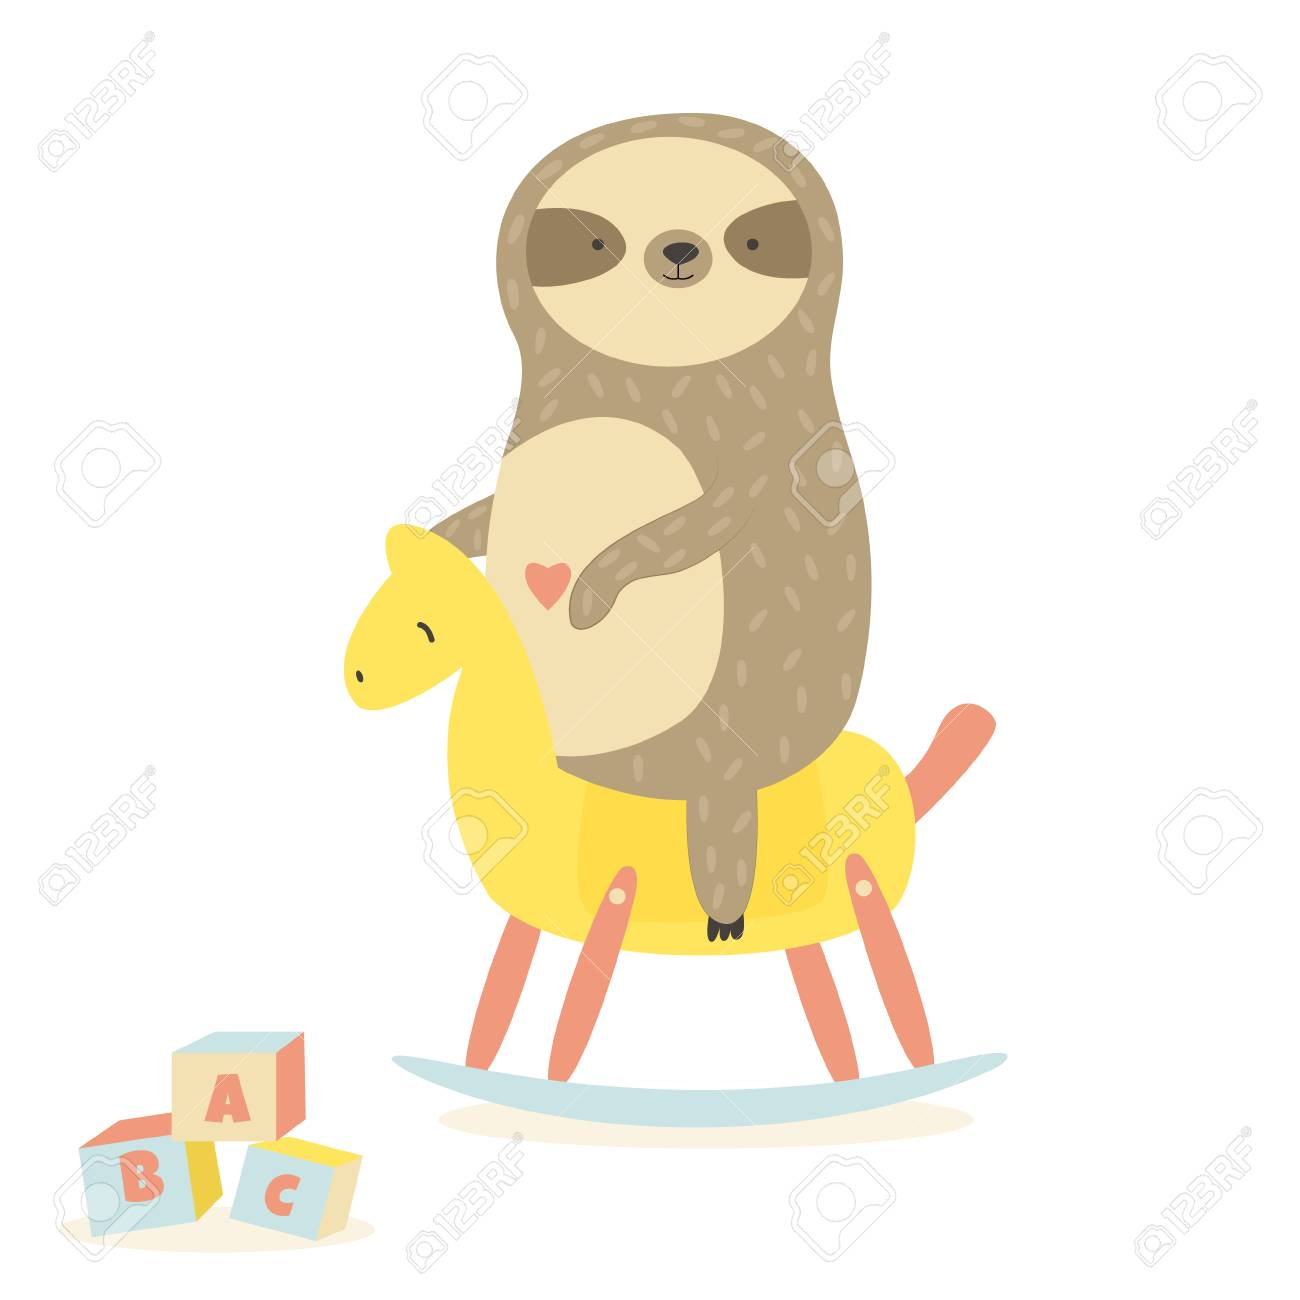 Cute Baby Sloth Swinging Rocking Horse Animal Character Design Stock Photo Picture And Royalty Free Image Image 110628865